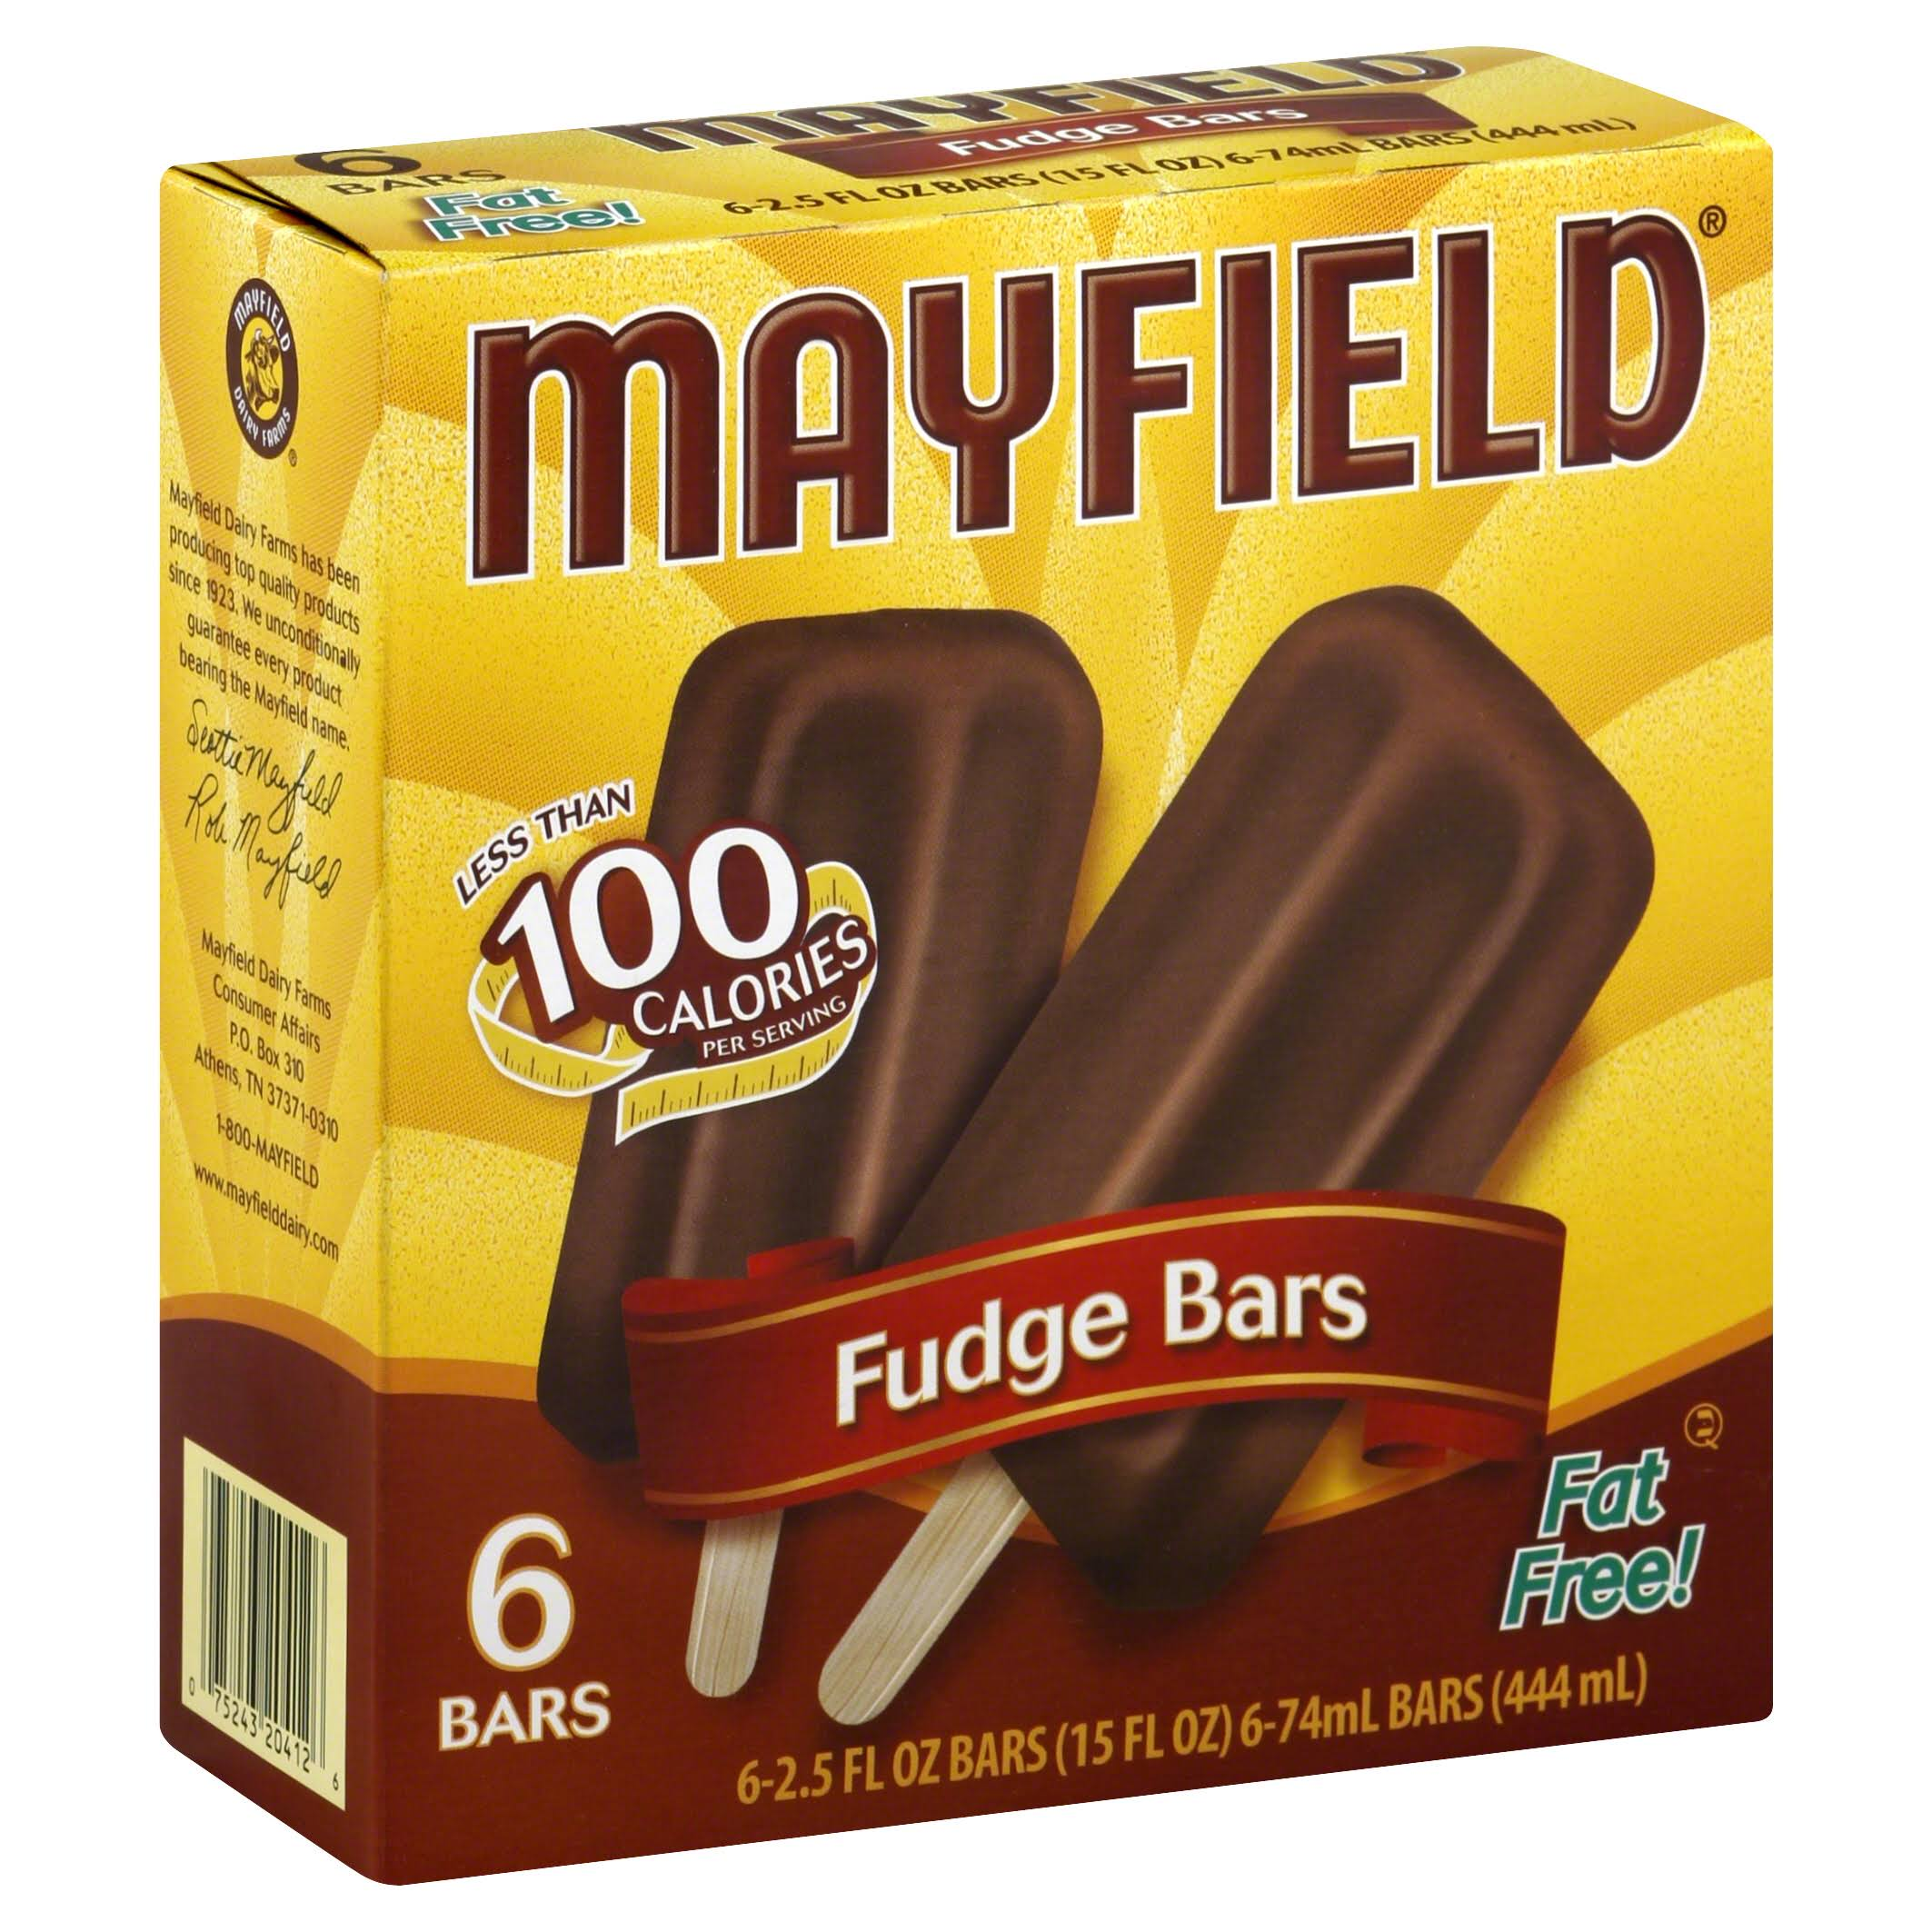 Mayfield Fudge Bar - 2.5oz, 6ct